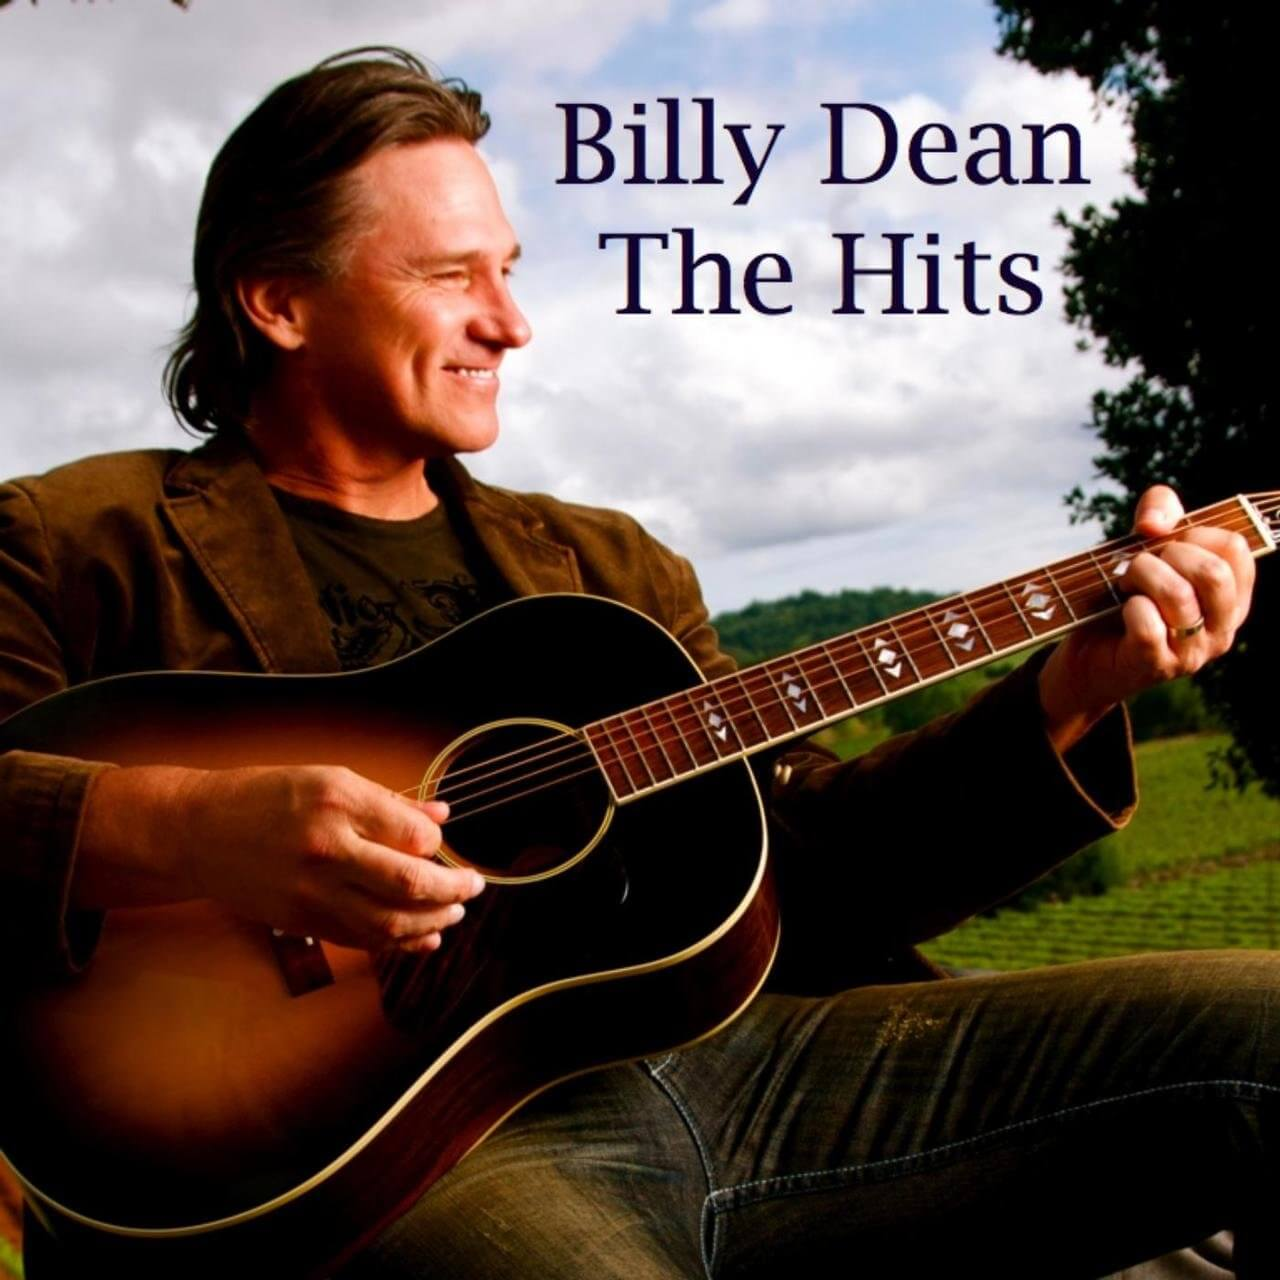 Billy Dean - The Hits